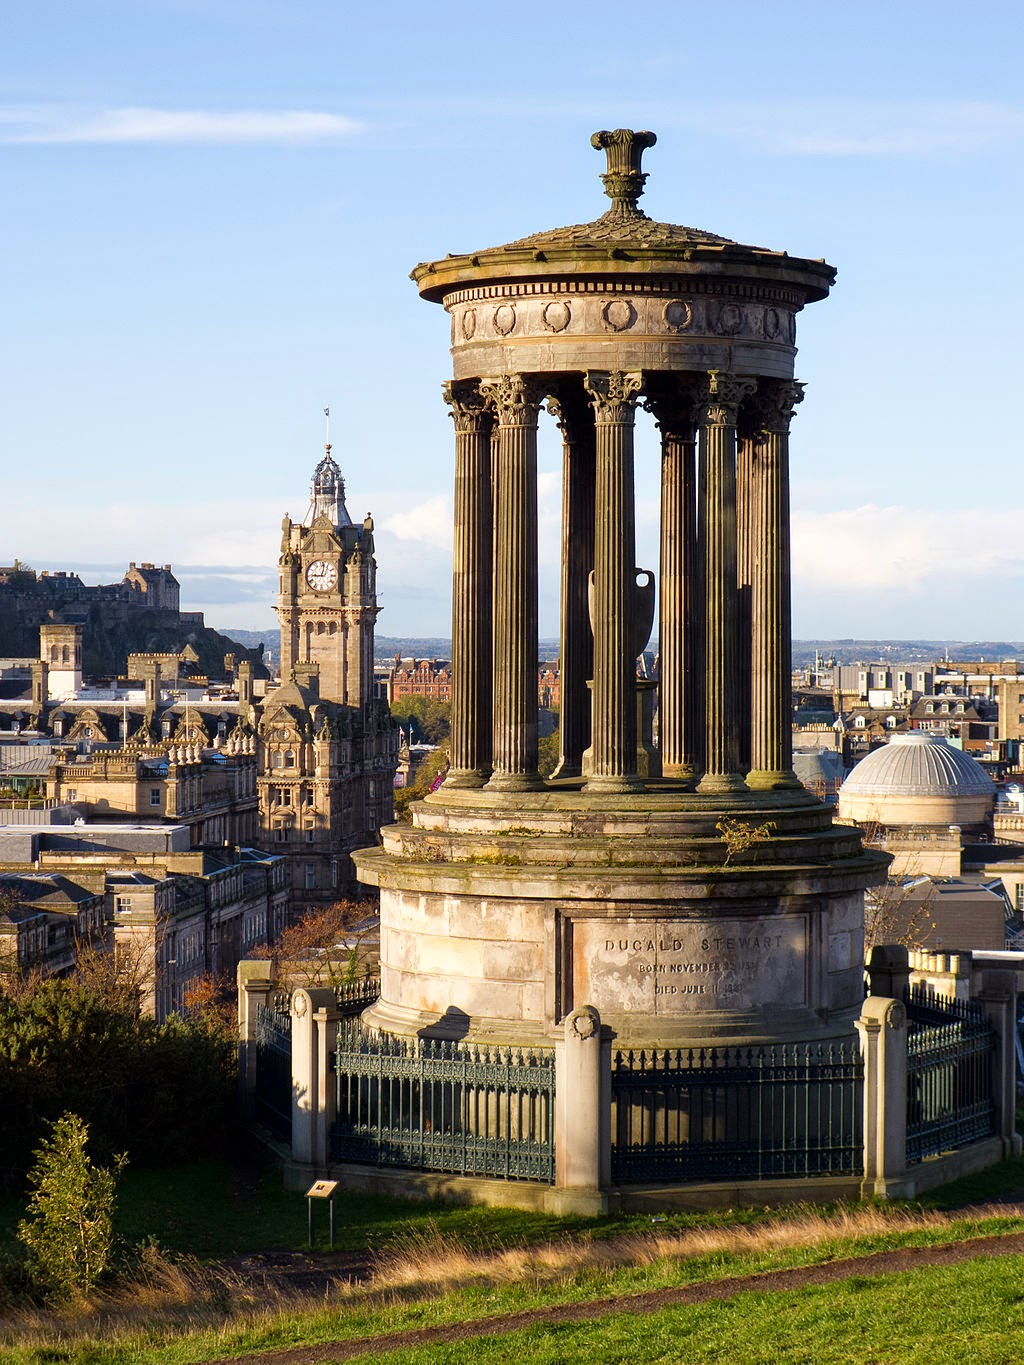 Dugald Stewart Monument on Carlton Hill in Edinbugh, Scotland